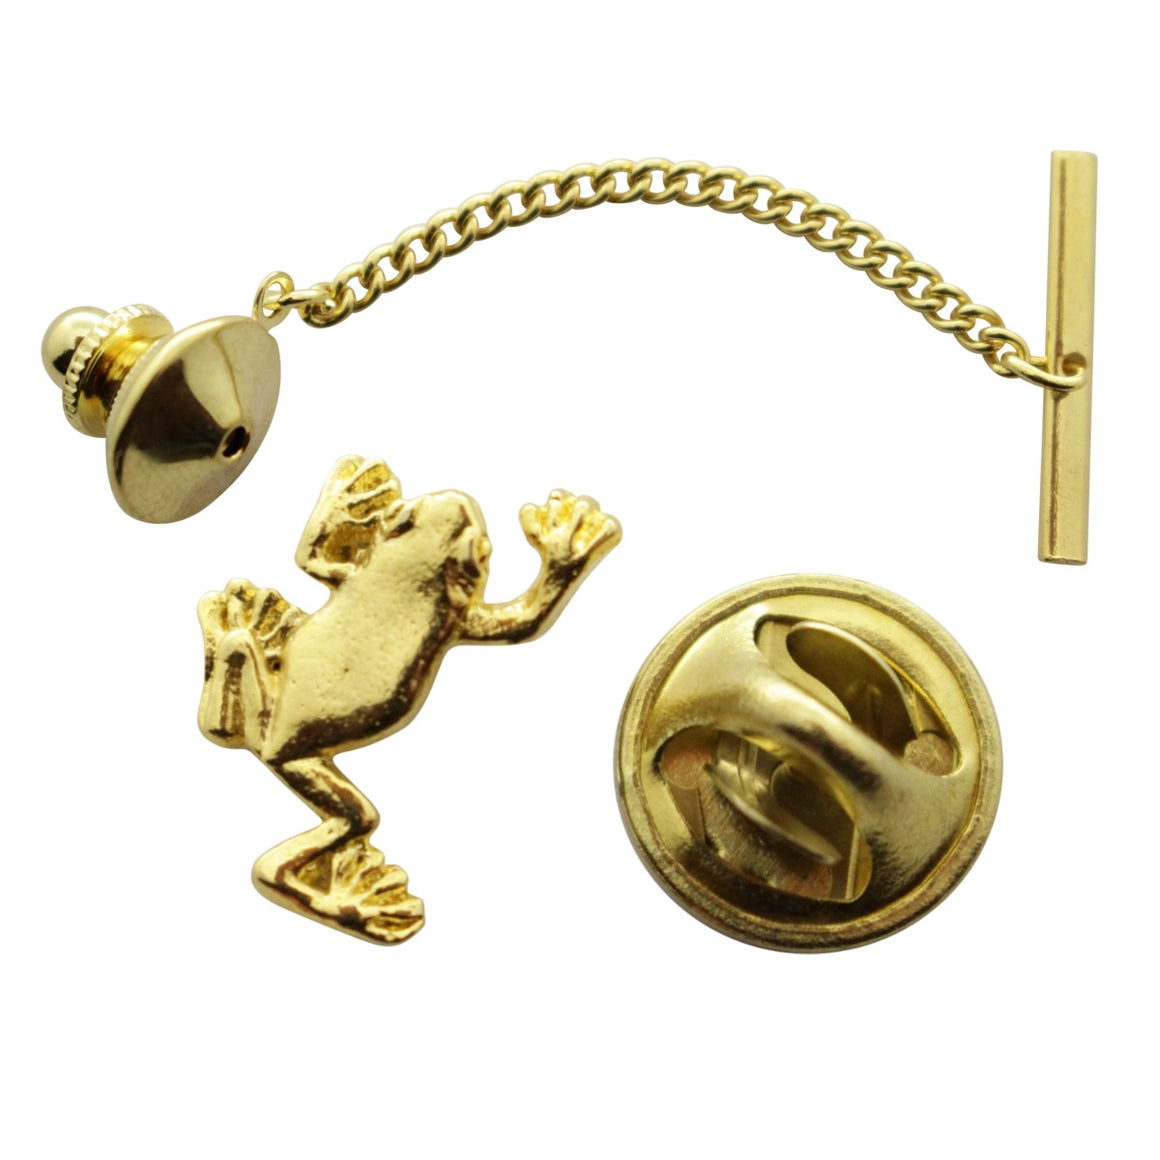 Tree Frog Tie Tack ~ 24K Gold ~ Tie Tack or Pin ~ 24K Gold Tie Tack or Pin ~ Sarah's Treats & Treasures